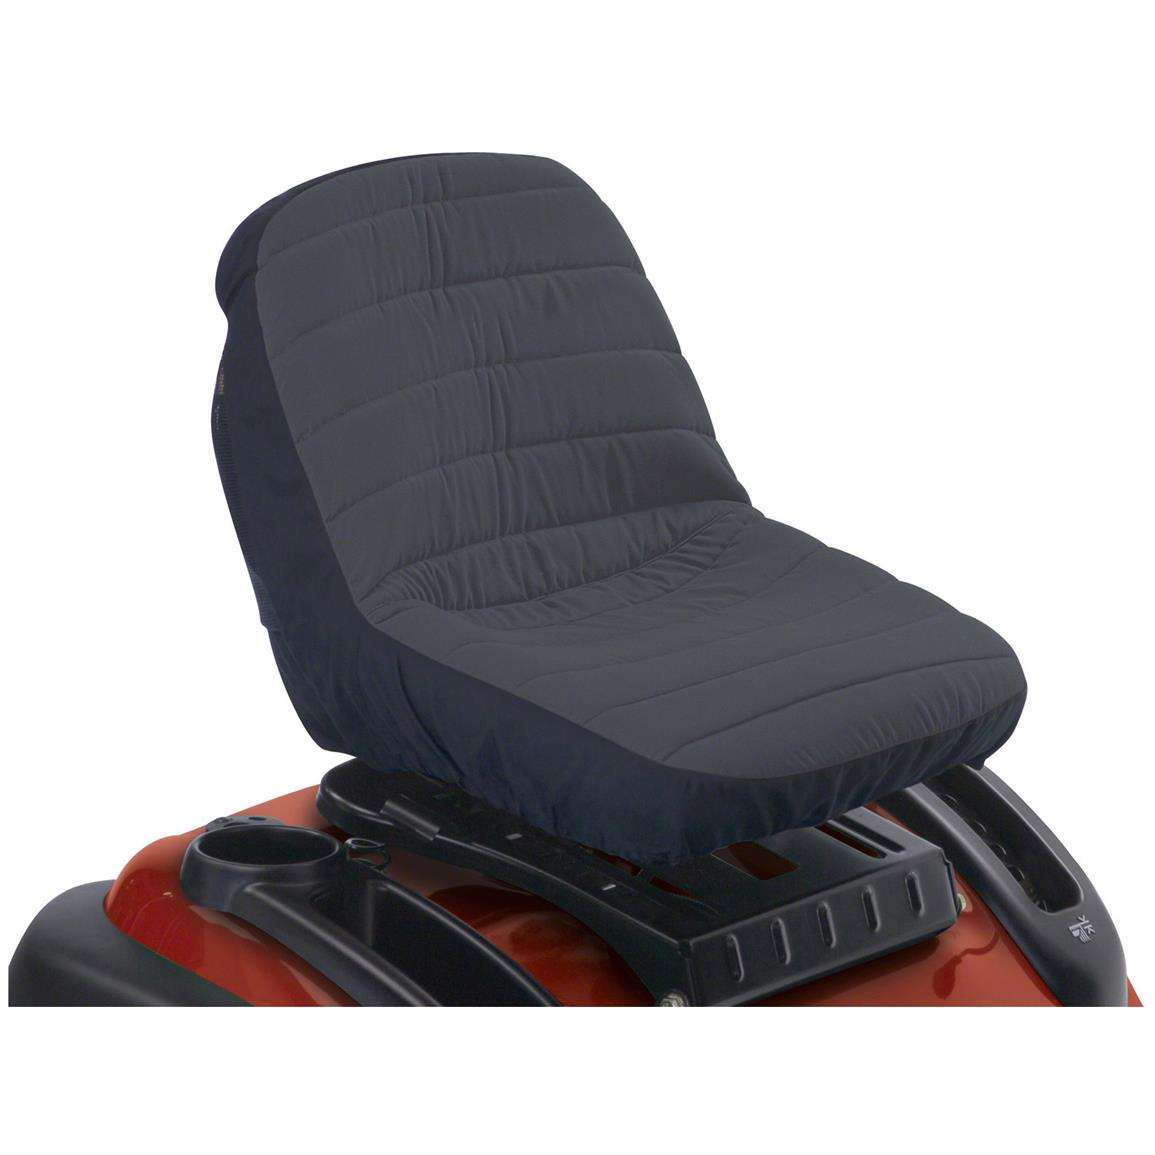 Classic Accessories Deluxe Tractor Seat Cover